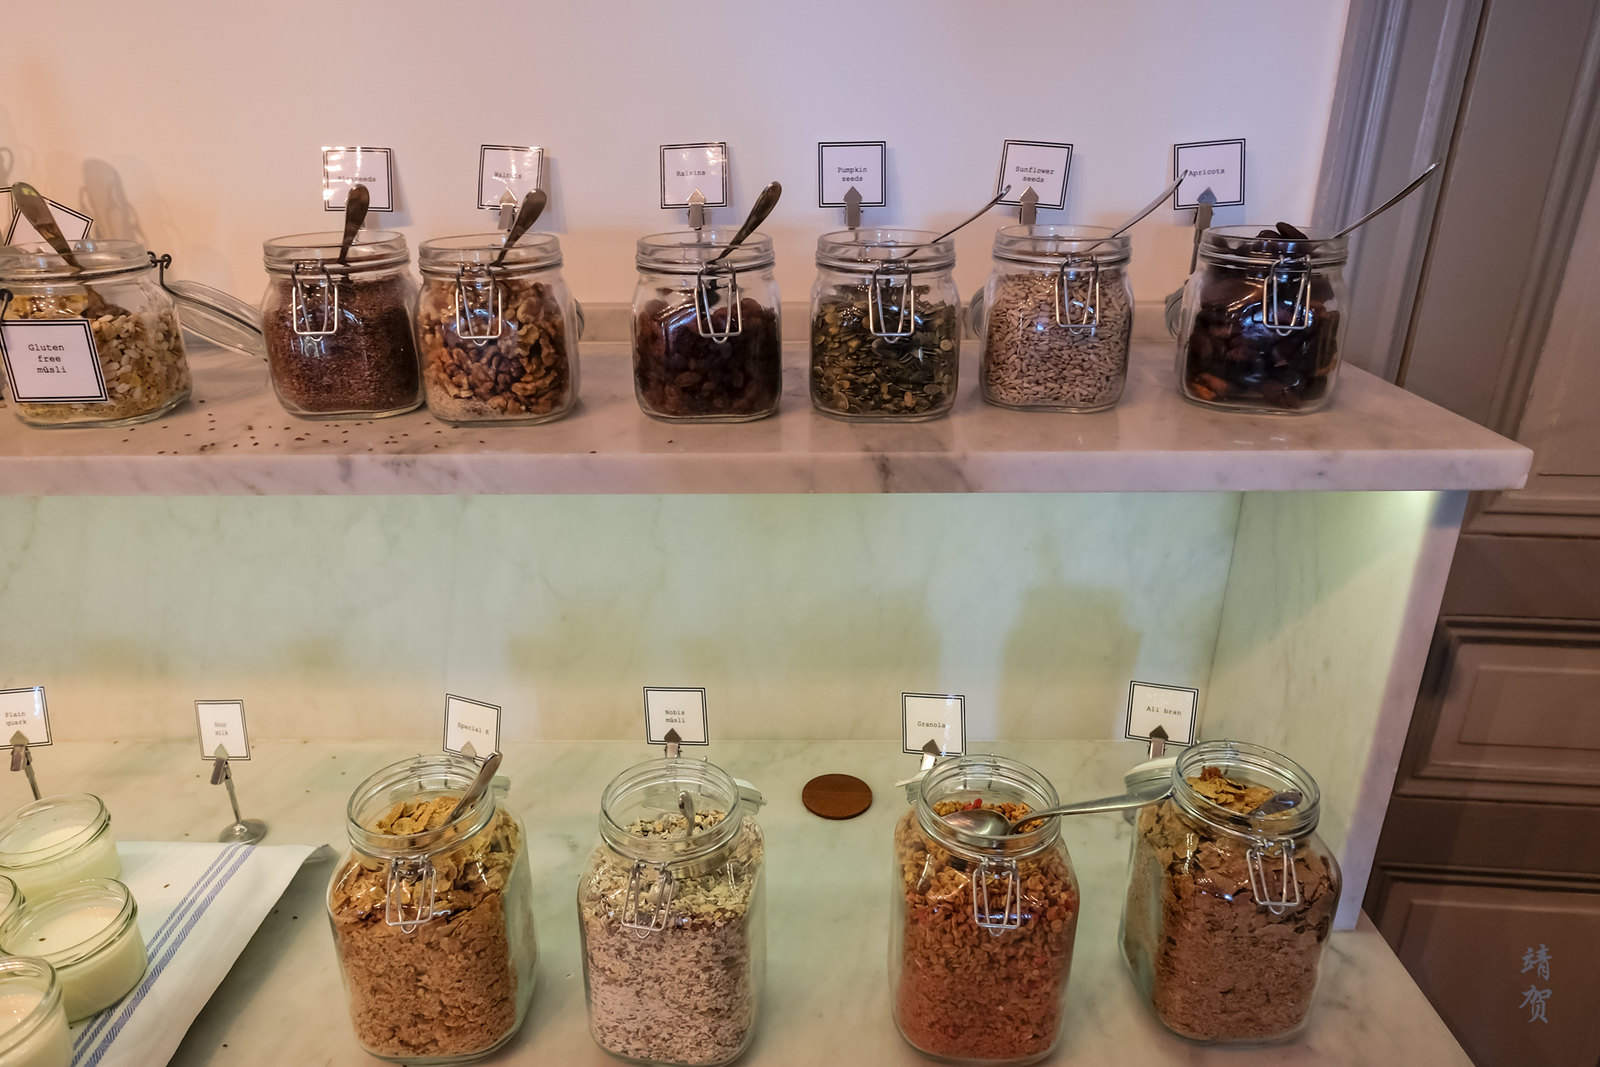 Muesli and granola